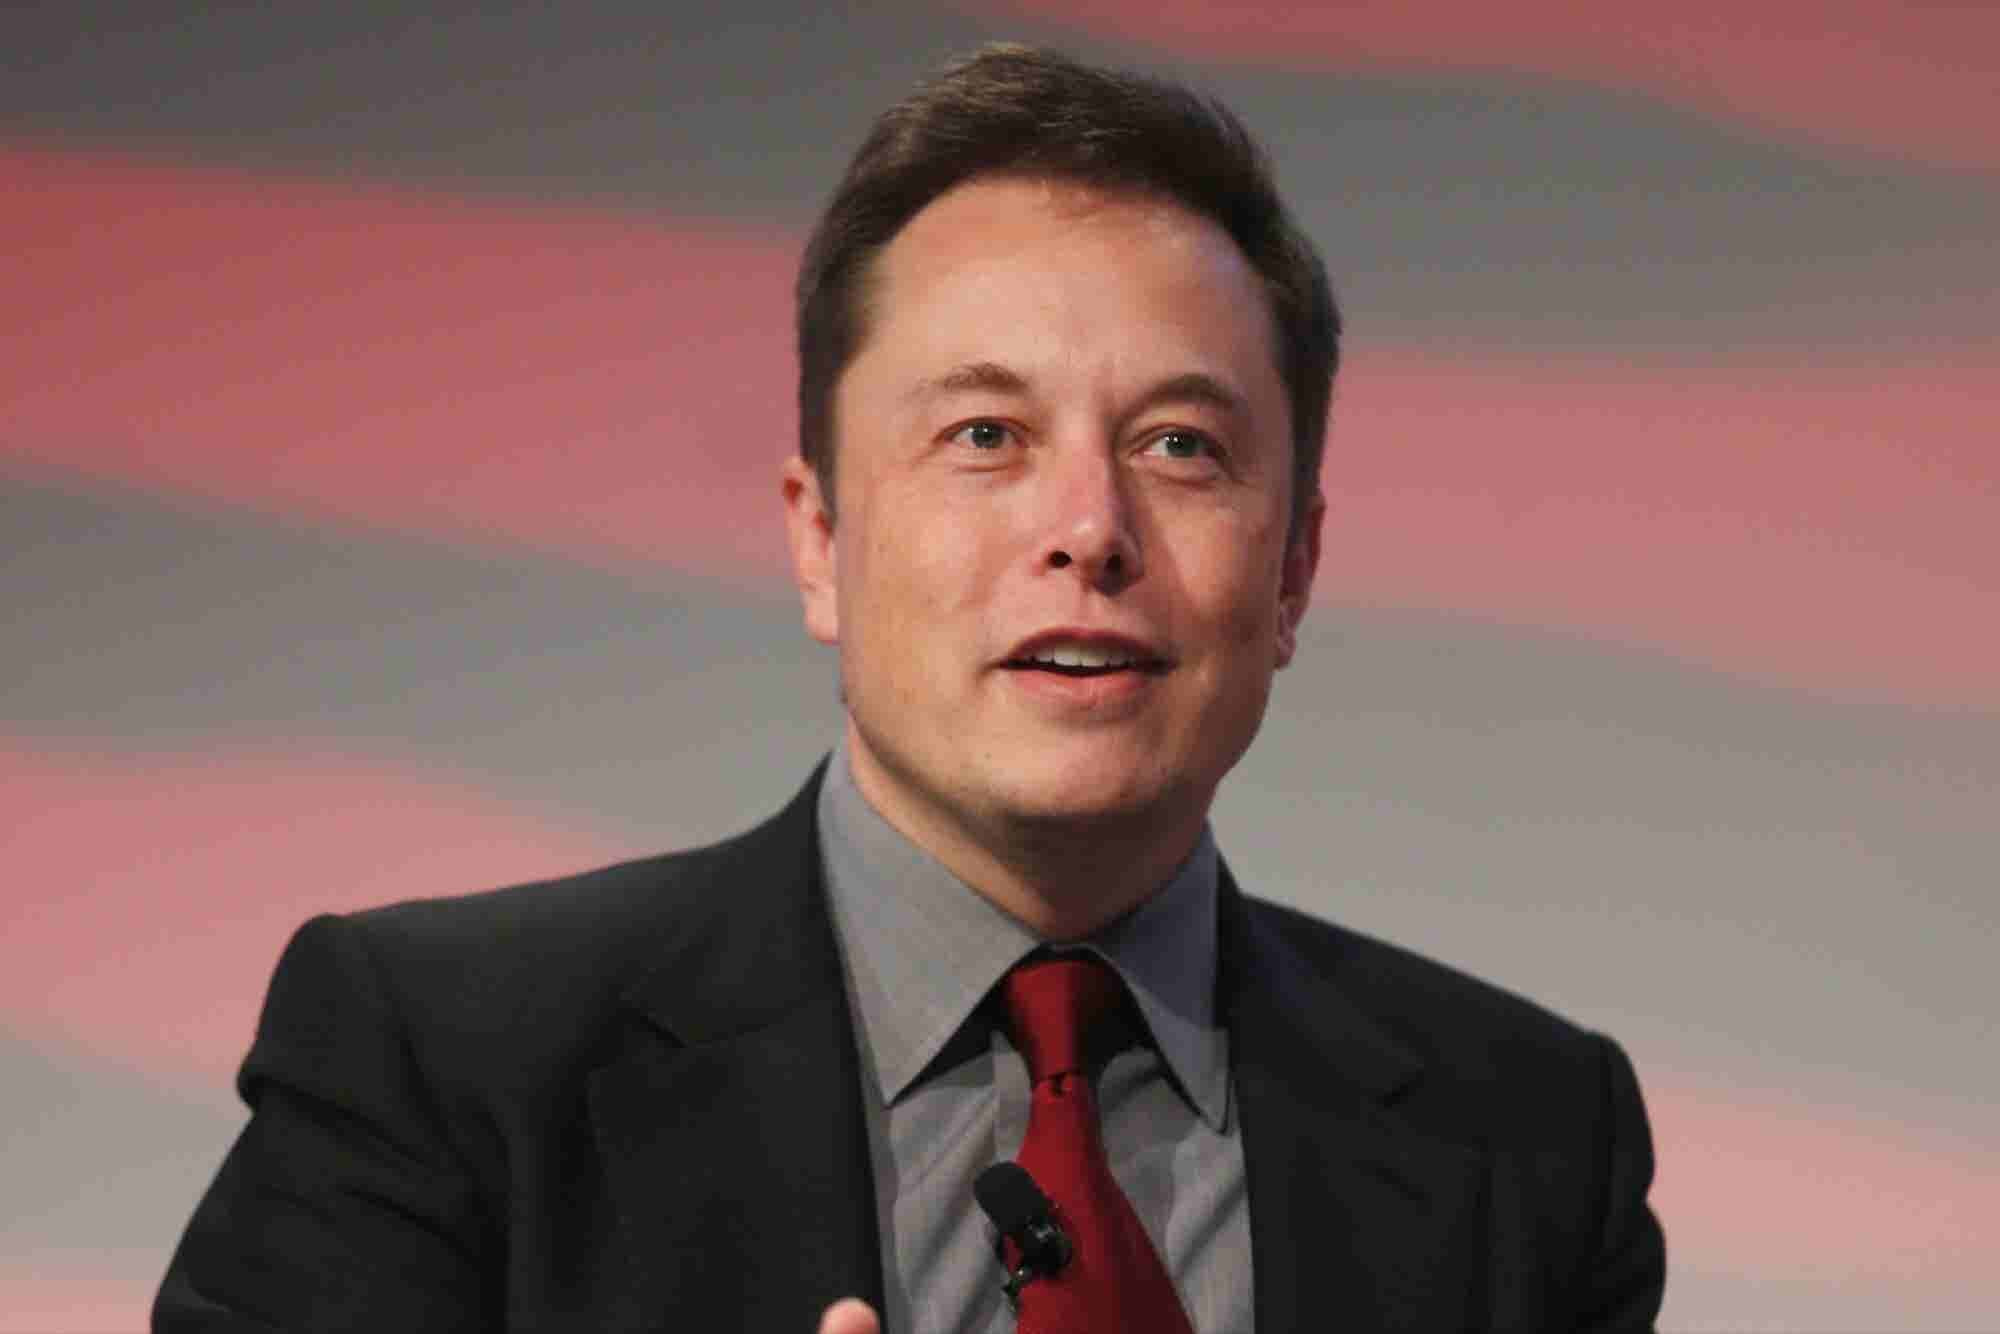 Elon Musk Tells Tesla Competitors to Bring It On